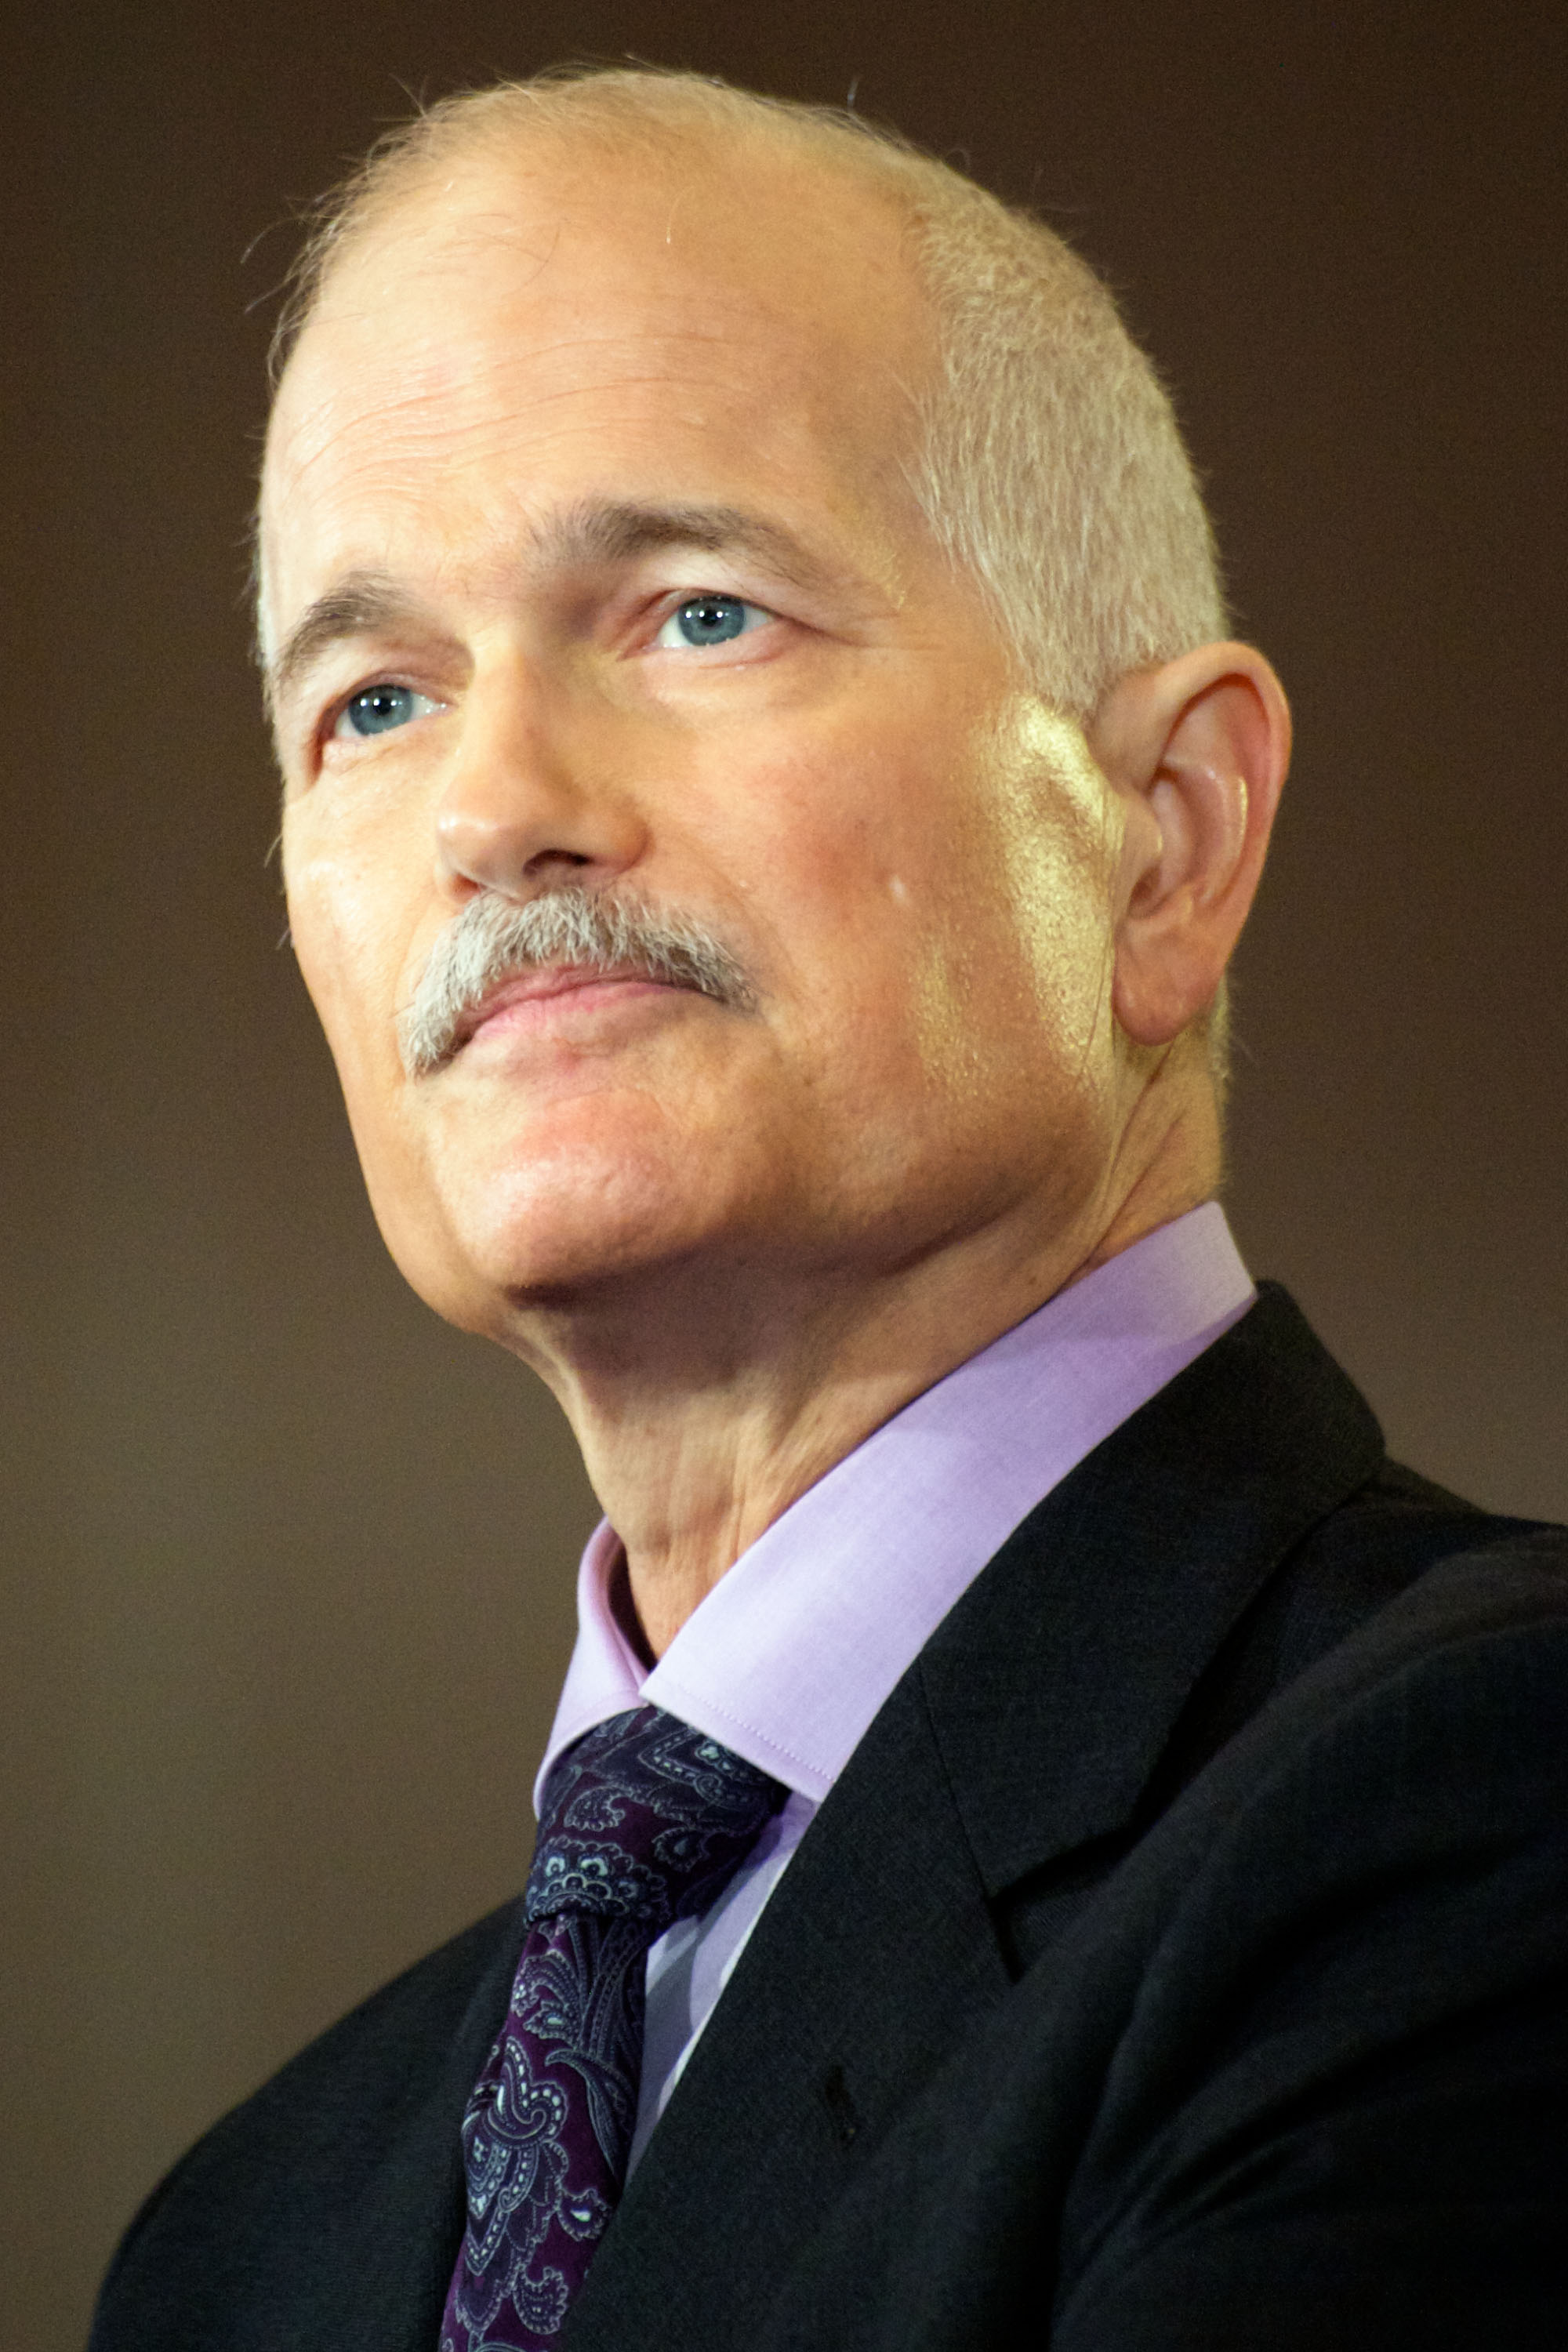 The Honourable Jack Layton